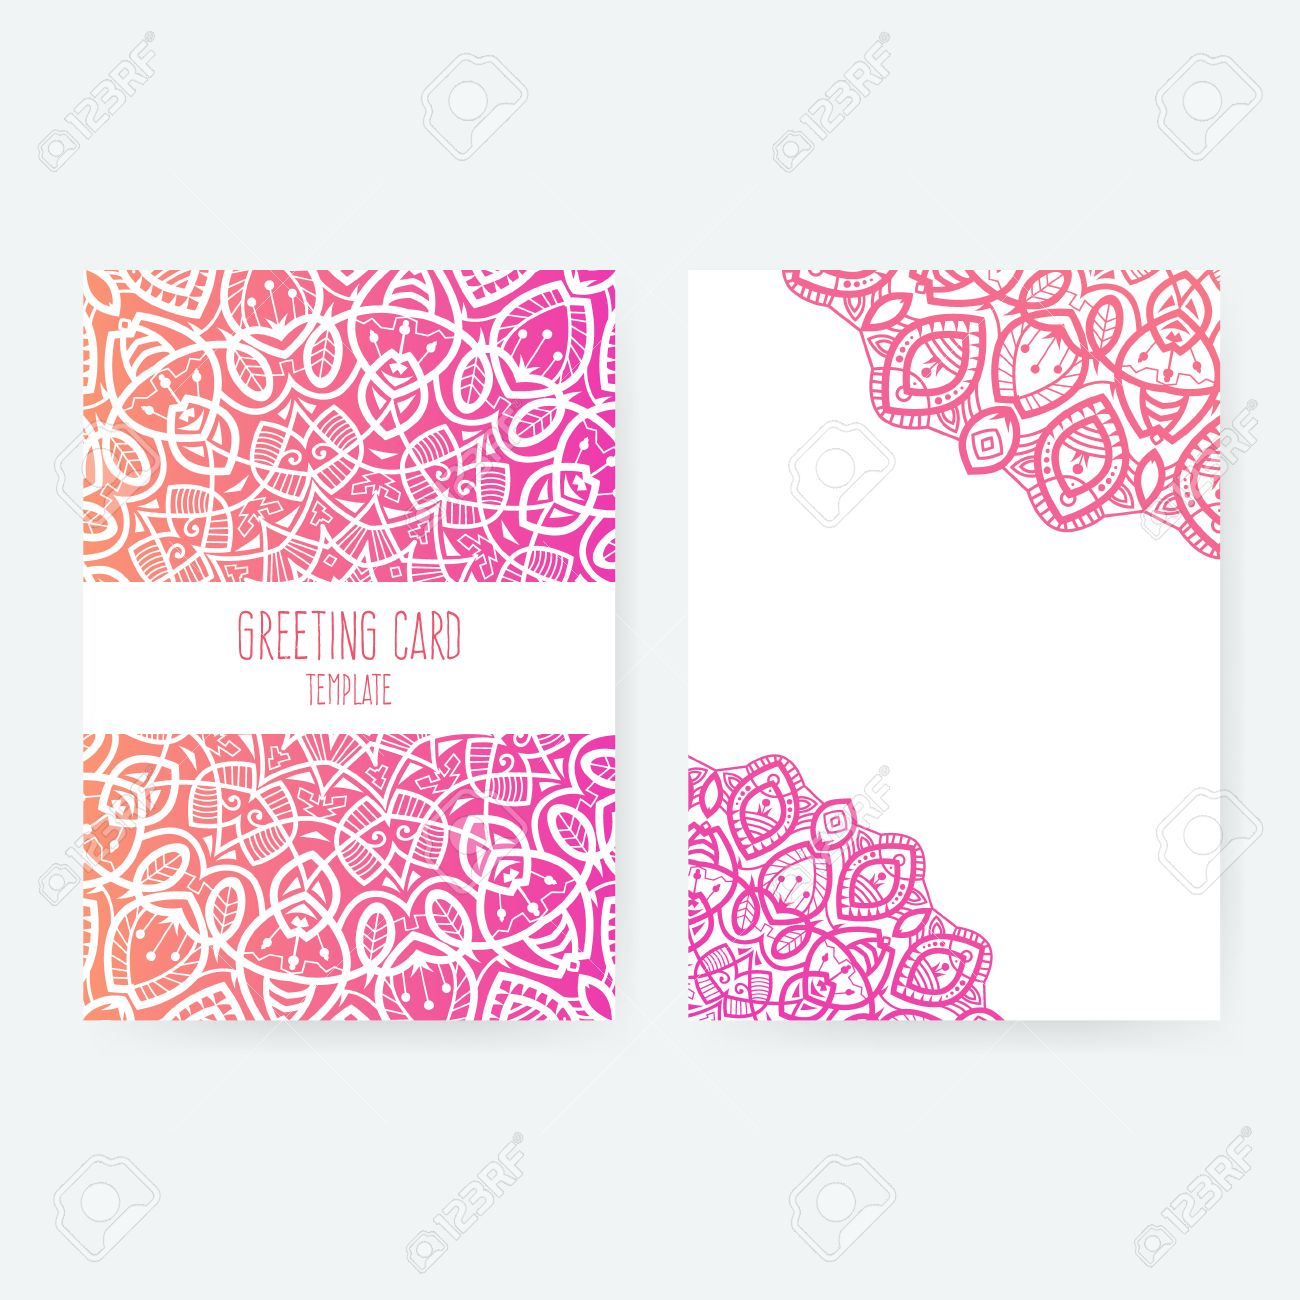 Housekeeper business cards images free business cards business invitation card mind mapping on pollution set of business card and invitation card templates with magicingreecefo Gallery